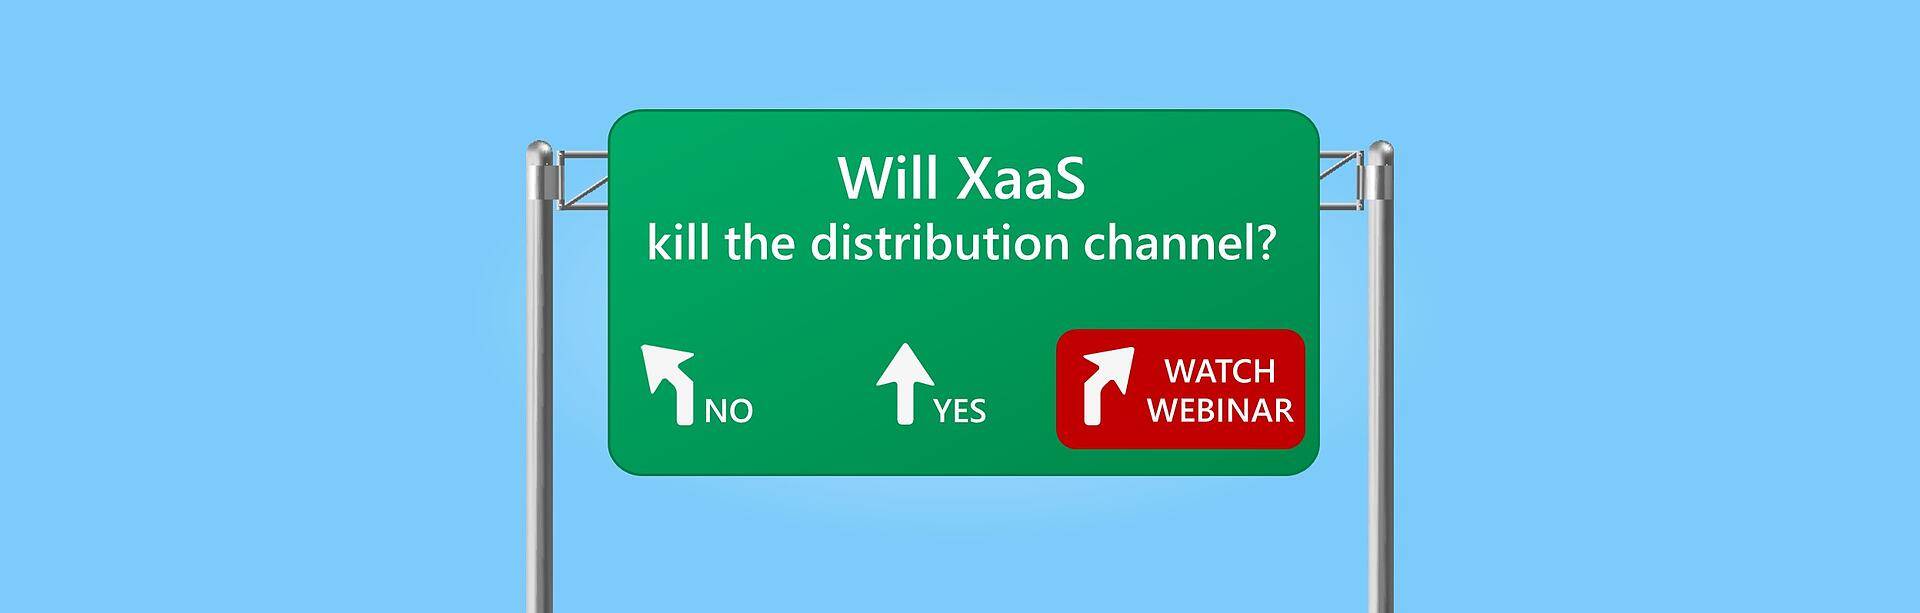 Will XaaS kill the cloud distribution channel?